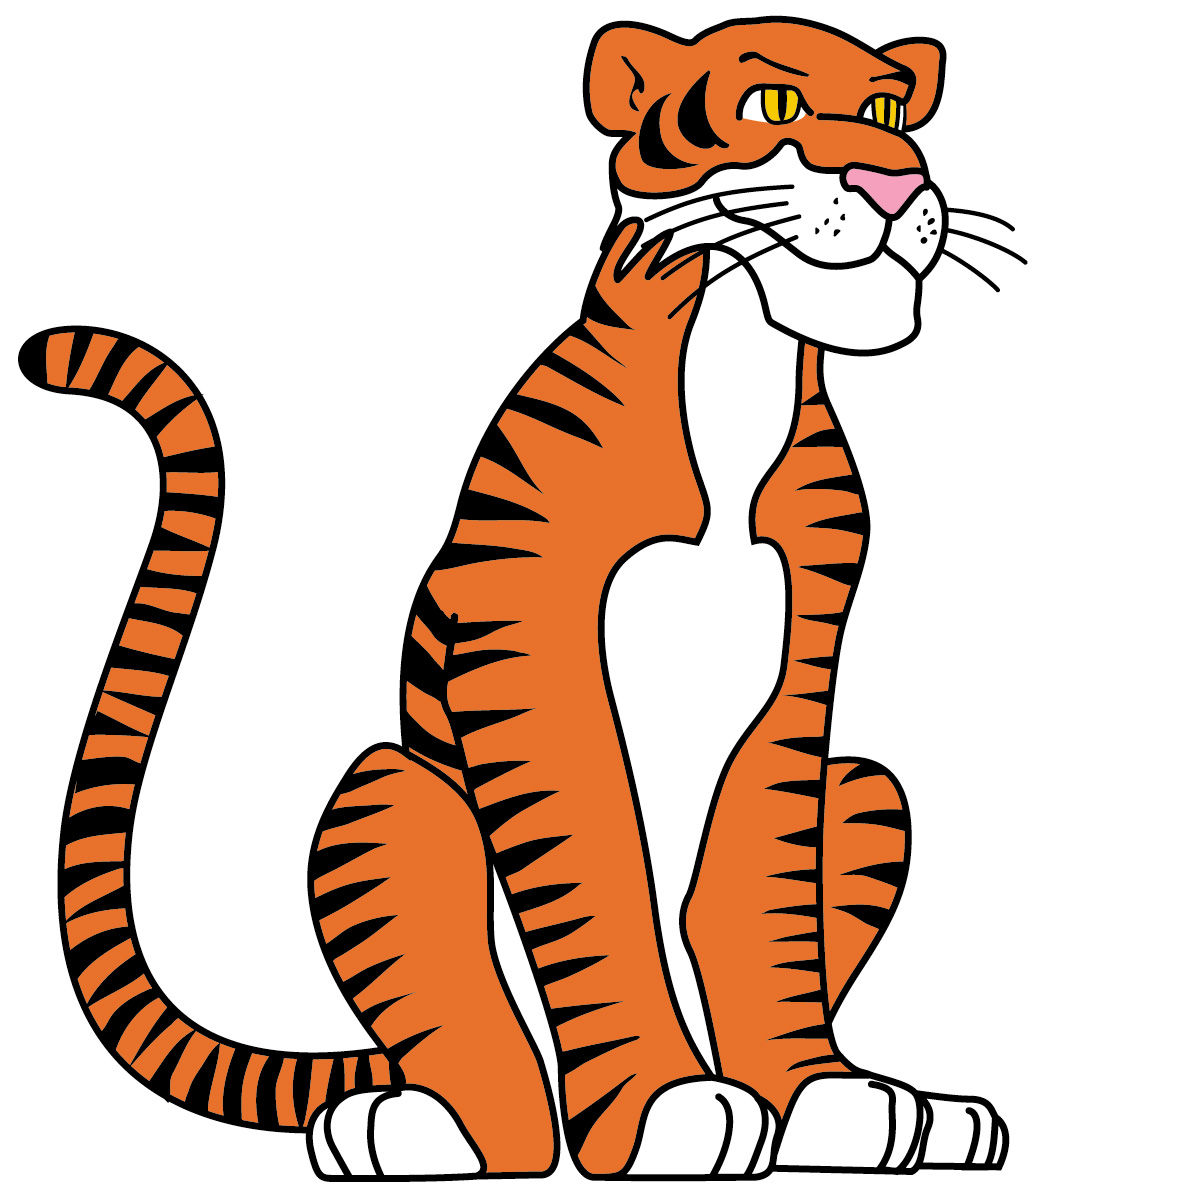 Tiiger clipart #6, Download drawings